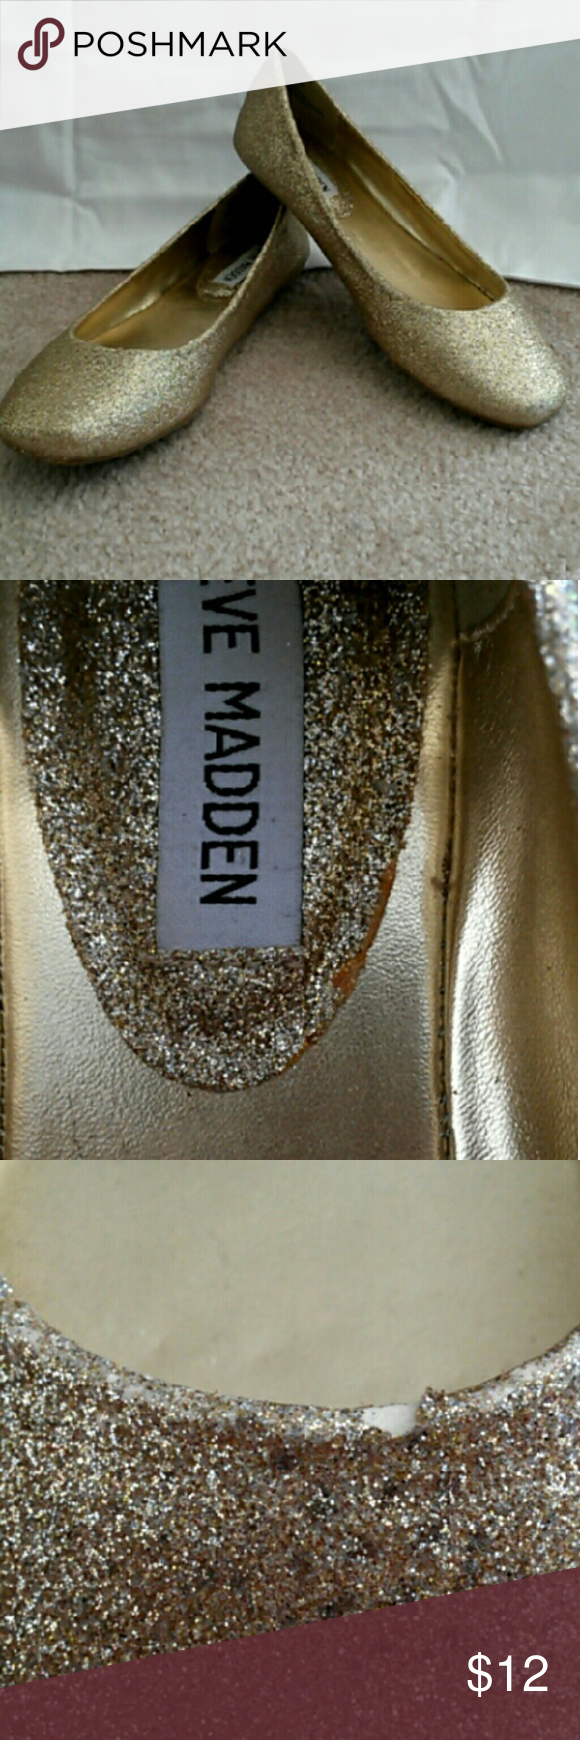 Ballet Flats Gold glitter Steve Madden ballet flats. In excellent condition, no signs of wear on the exterior sole. Orange glue stain on interior sole of the right shoe (pictured) along with a chip in the glitter on the right shoe. Steve Madden Shoes Flats & Loafers